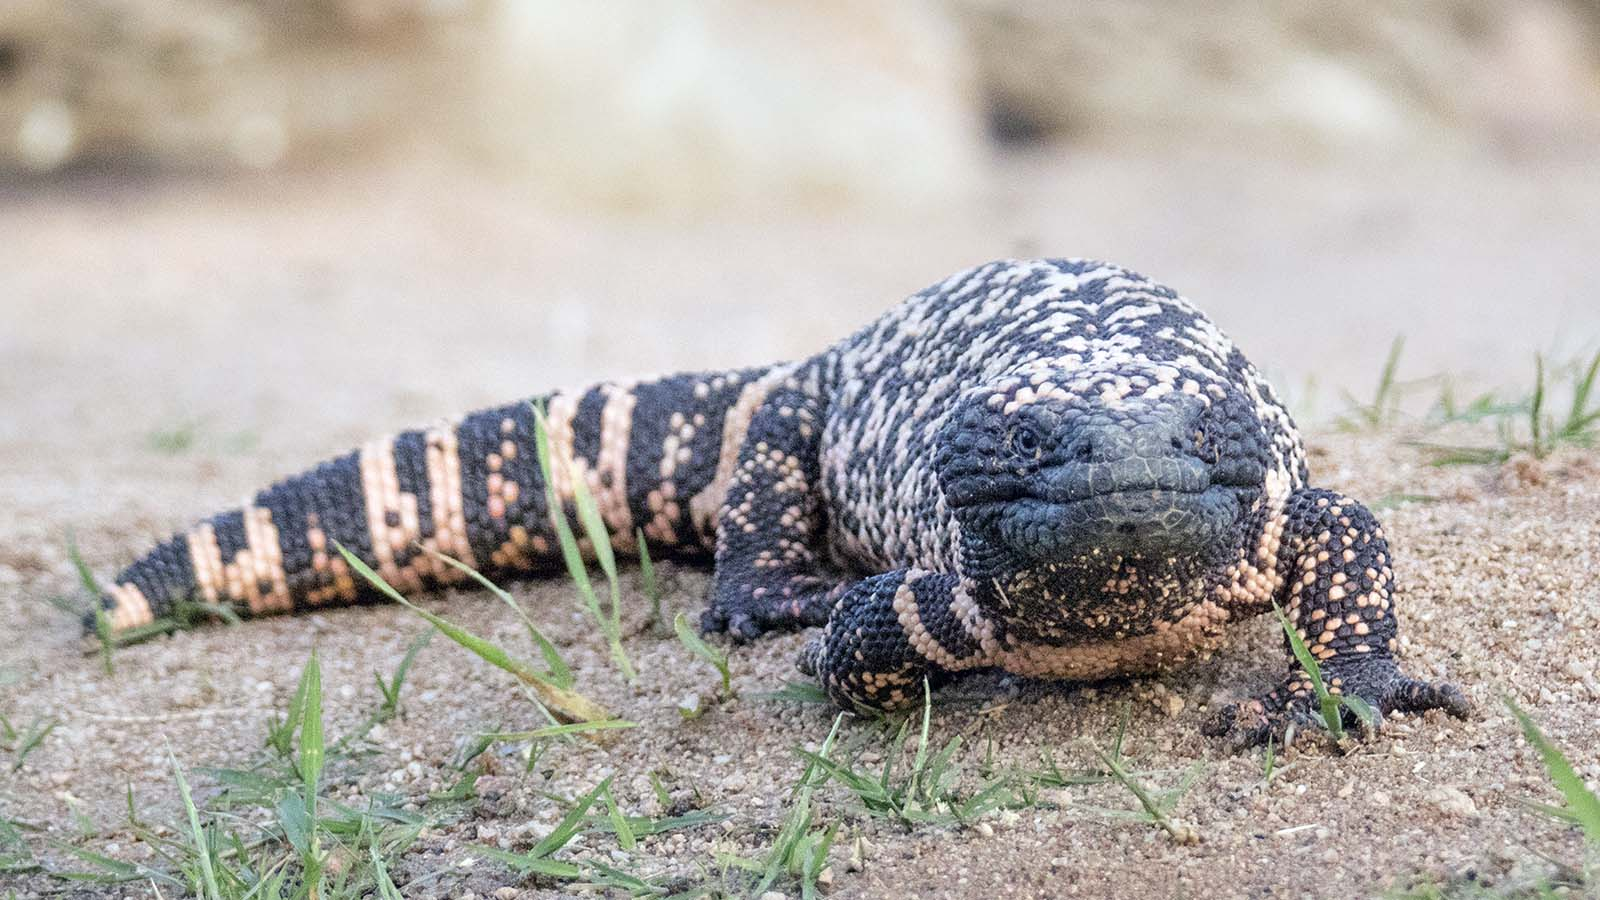 The Reclusive Gila Monster Packs a Venomous Punch